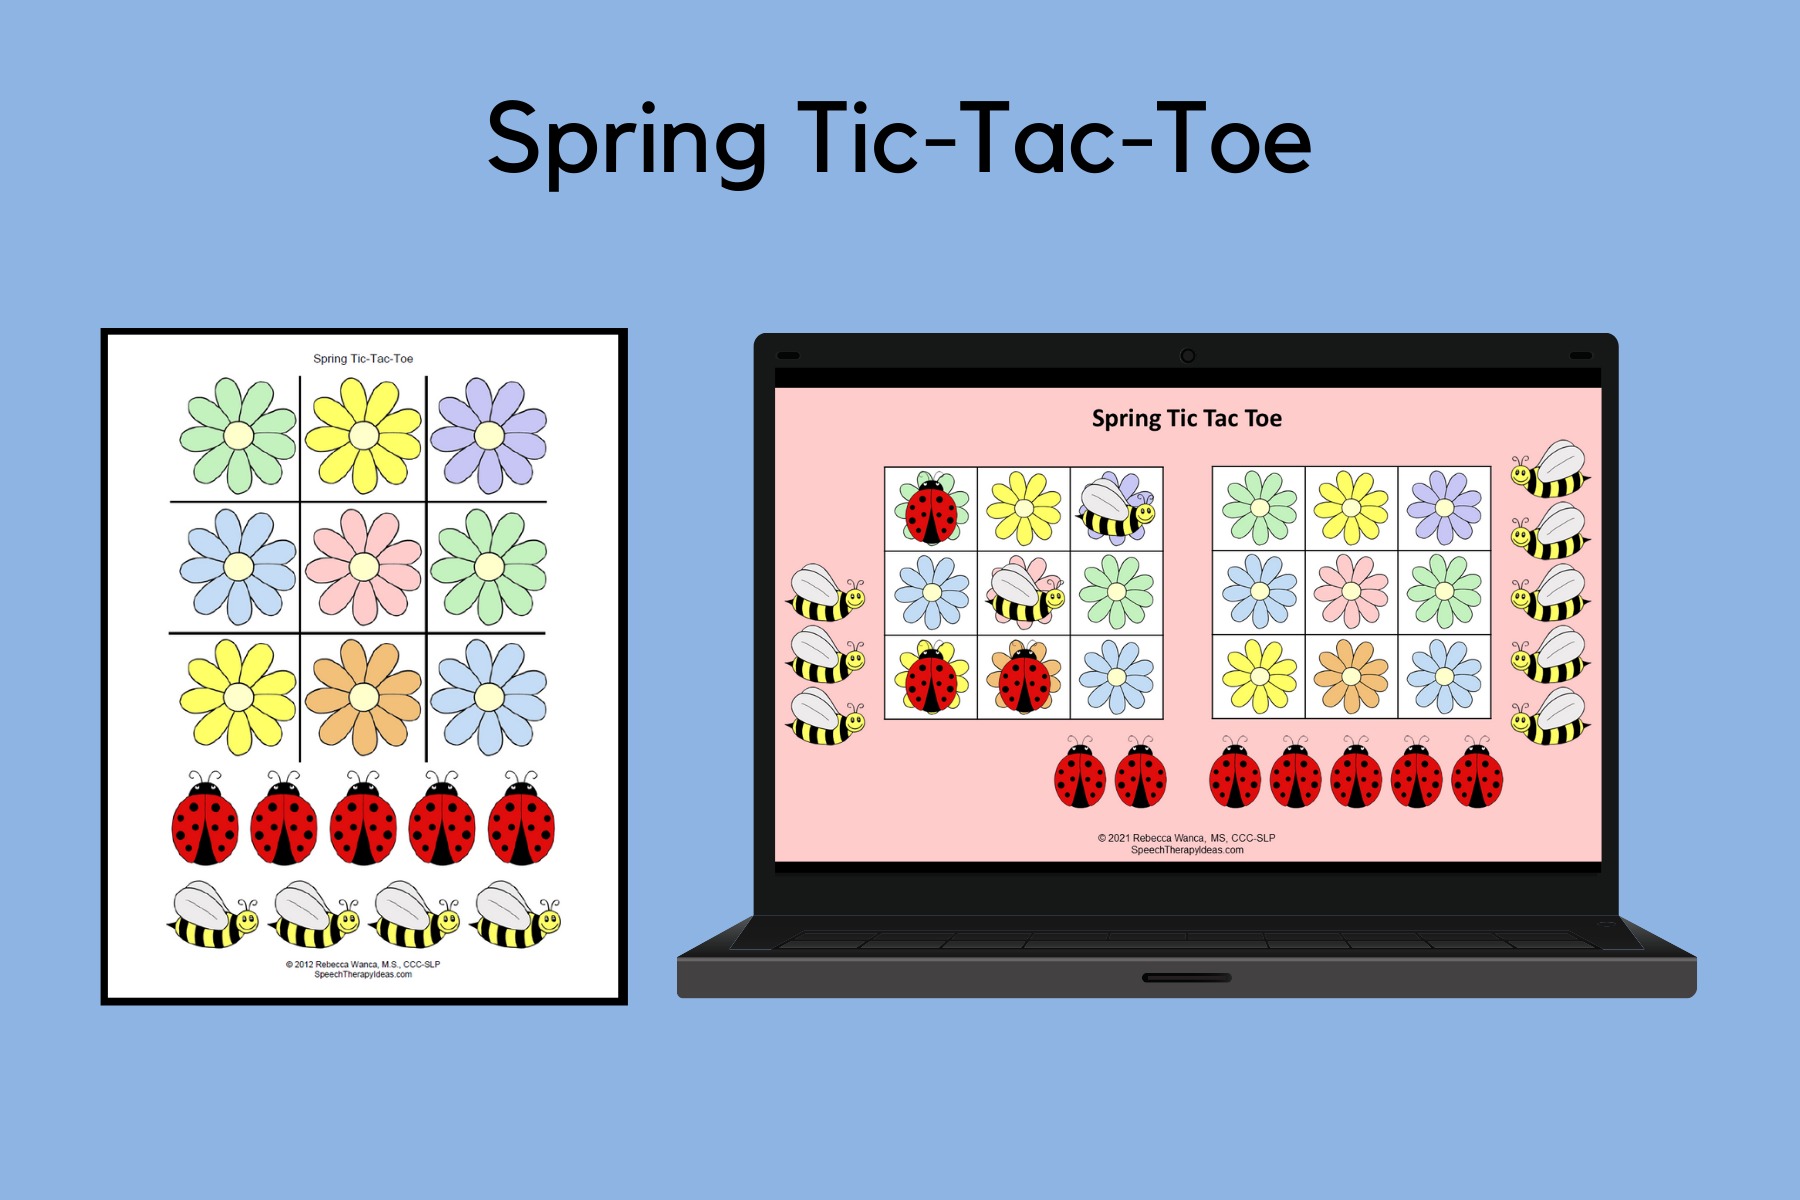 Spring Tic-Tac-Toe Reinforcement for Therapy